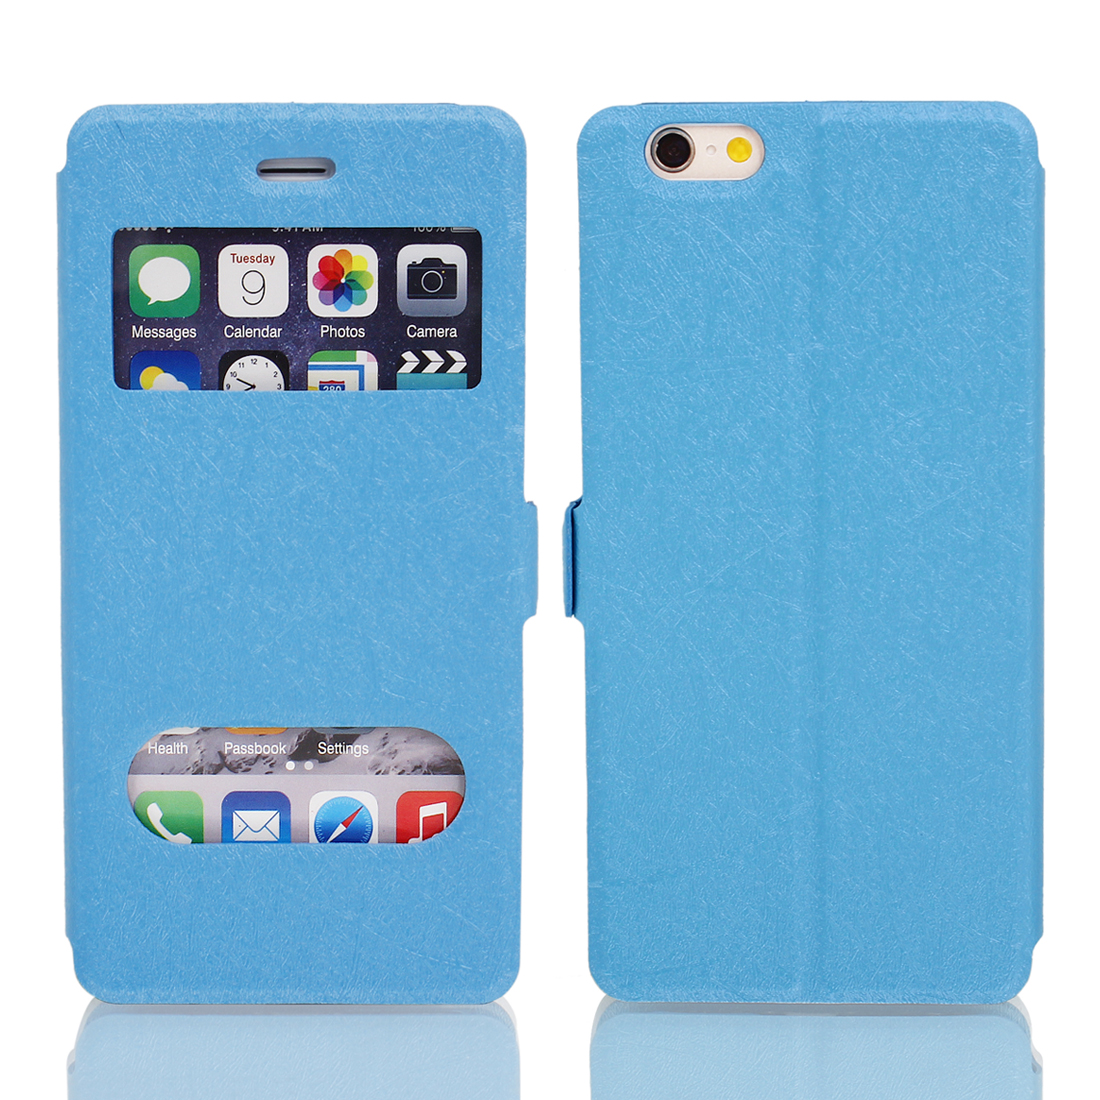 Magnetic Flip Faux Leather Pouch Case Cover Skin Blue for iPhone 6 4.7""